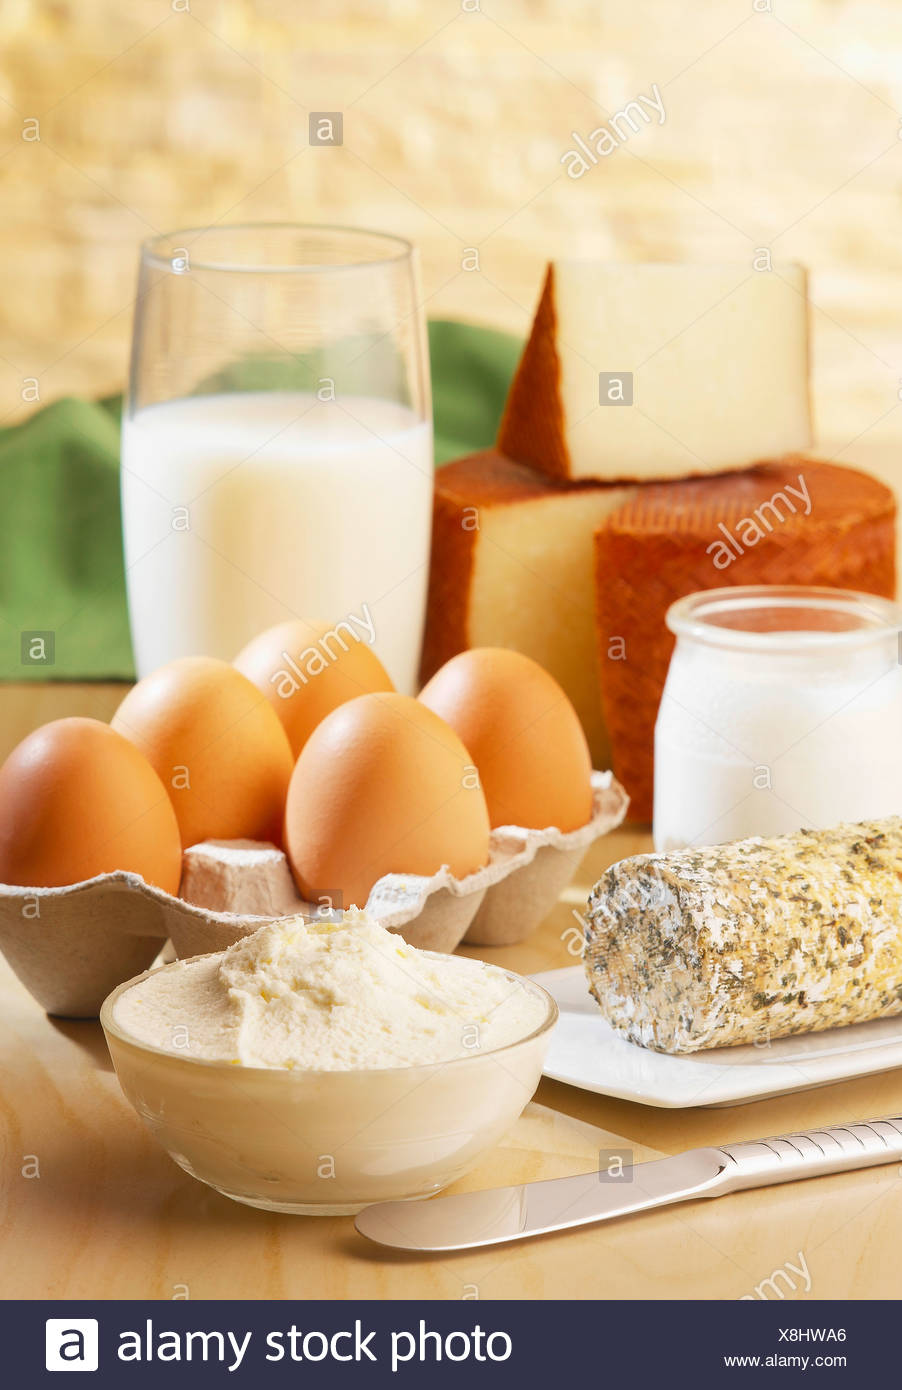 Dairy product composition - Stock Image